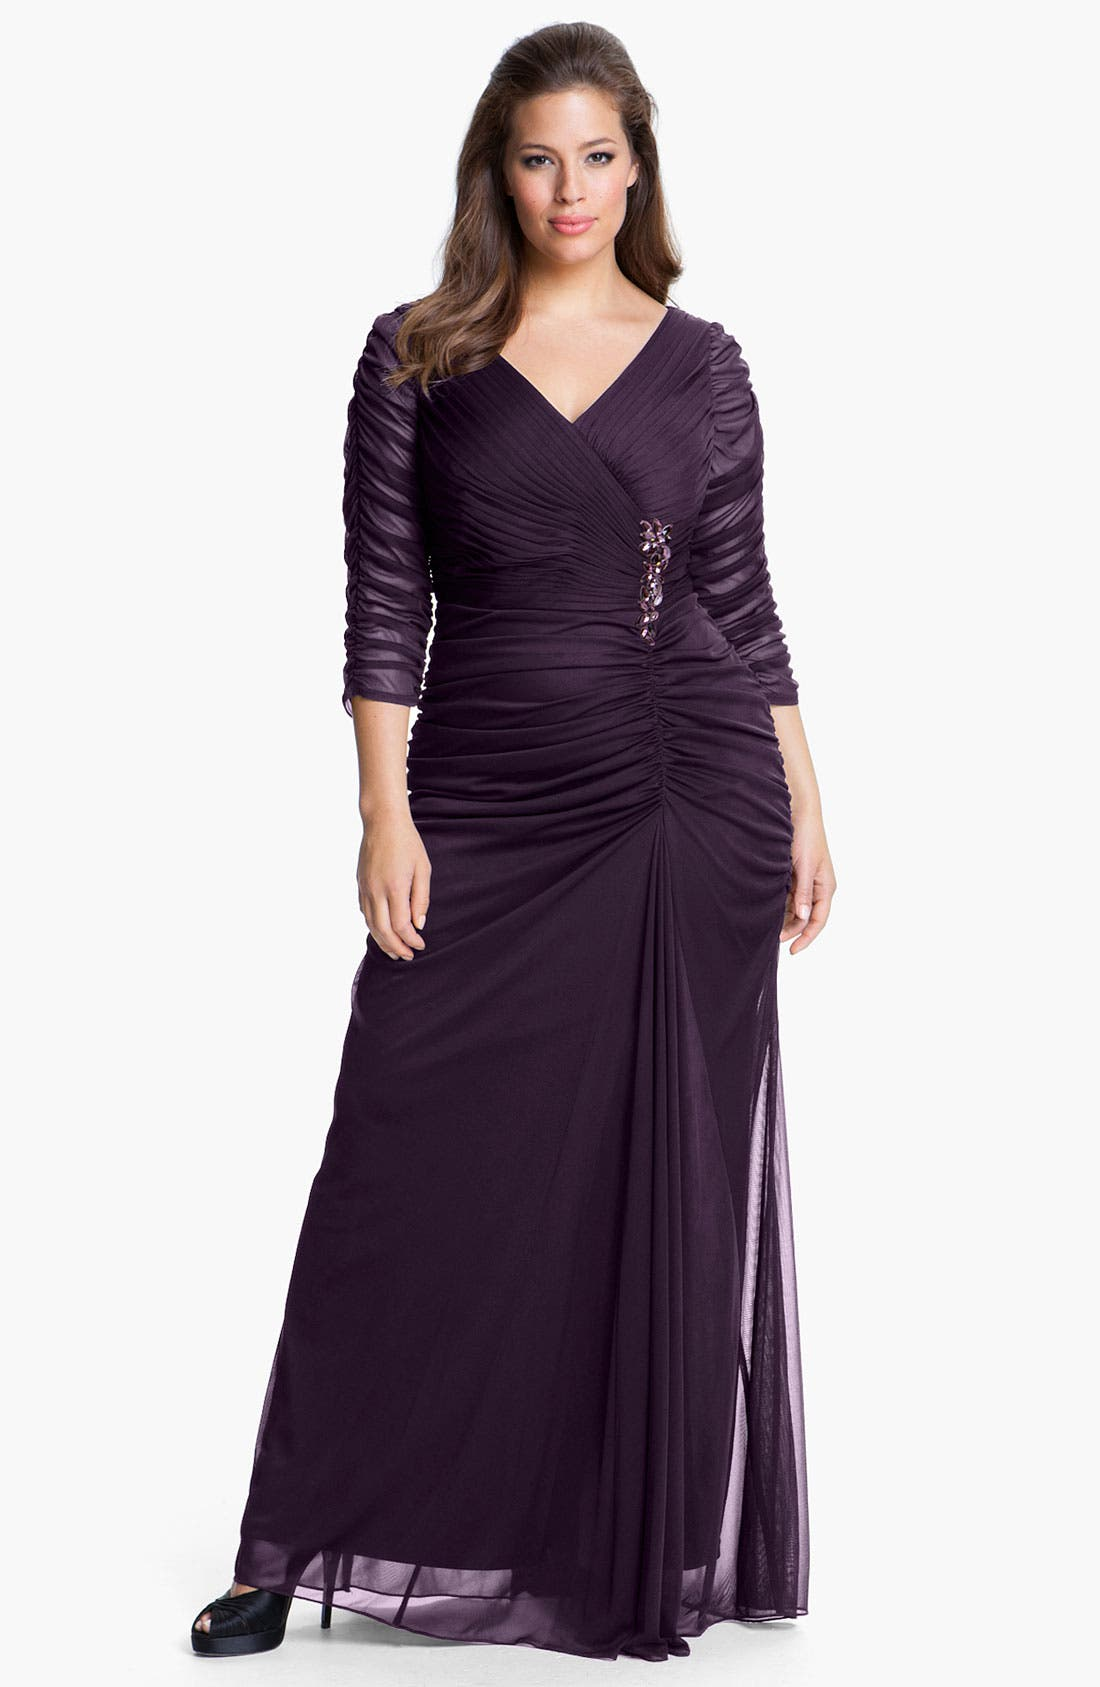 Vintage Cocktail Dresses, Party Dresses, Prom Dresses Plus Size Womens Adrianna Papell Beaded Mesh Gown Size 20W - Burgundy $180.00 AT vintagedancer.com